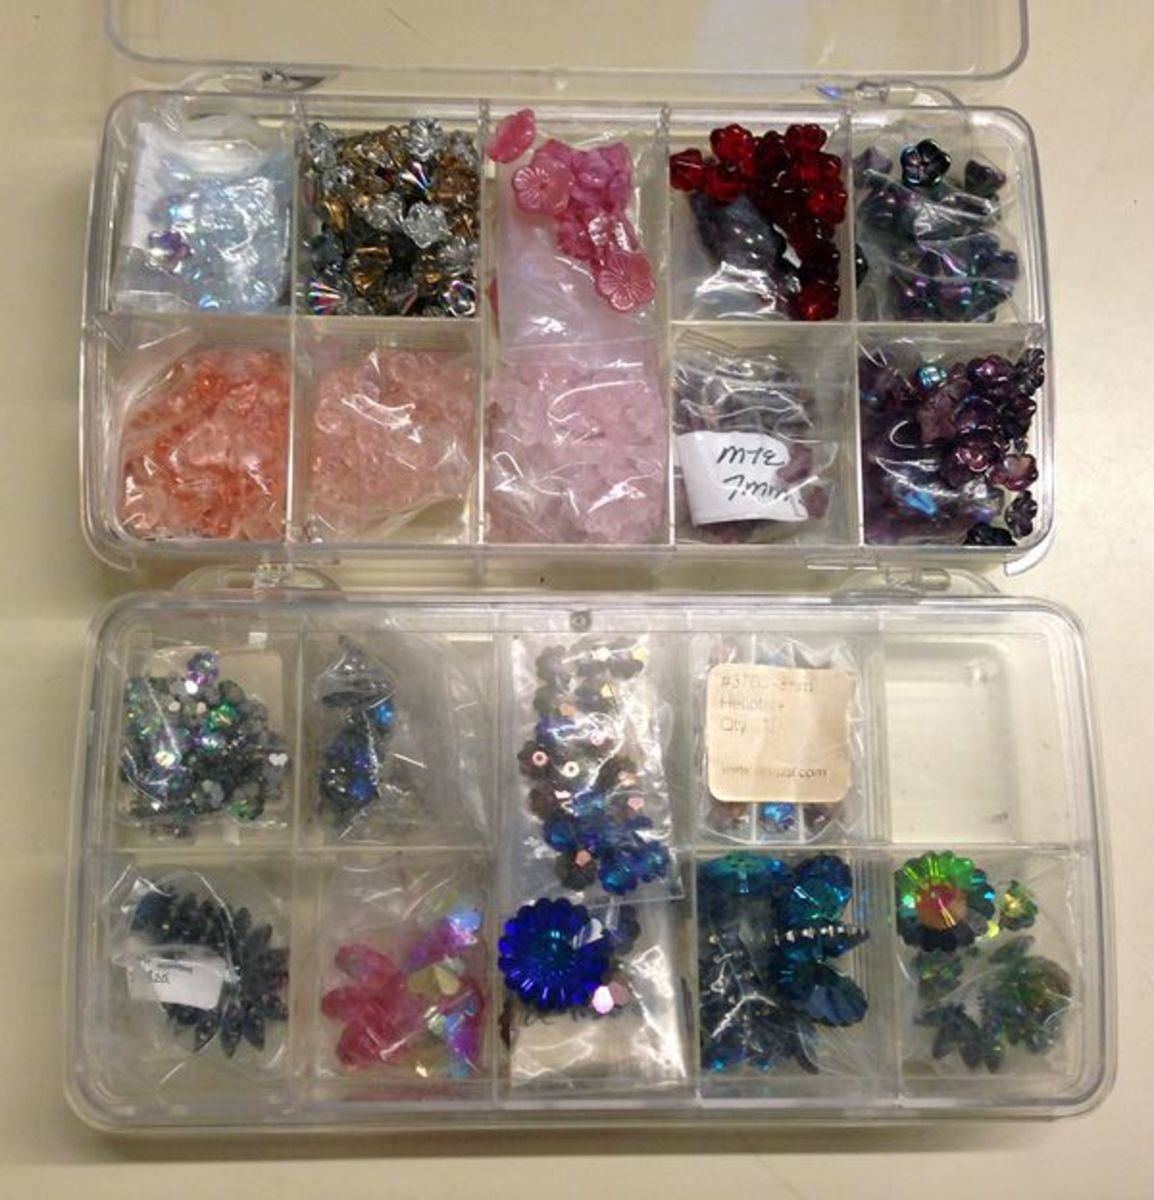 ArtBin Prism boxes used for bead storage